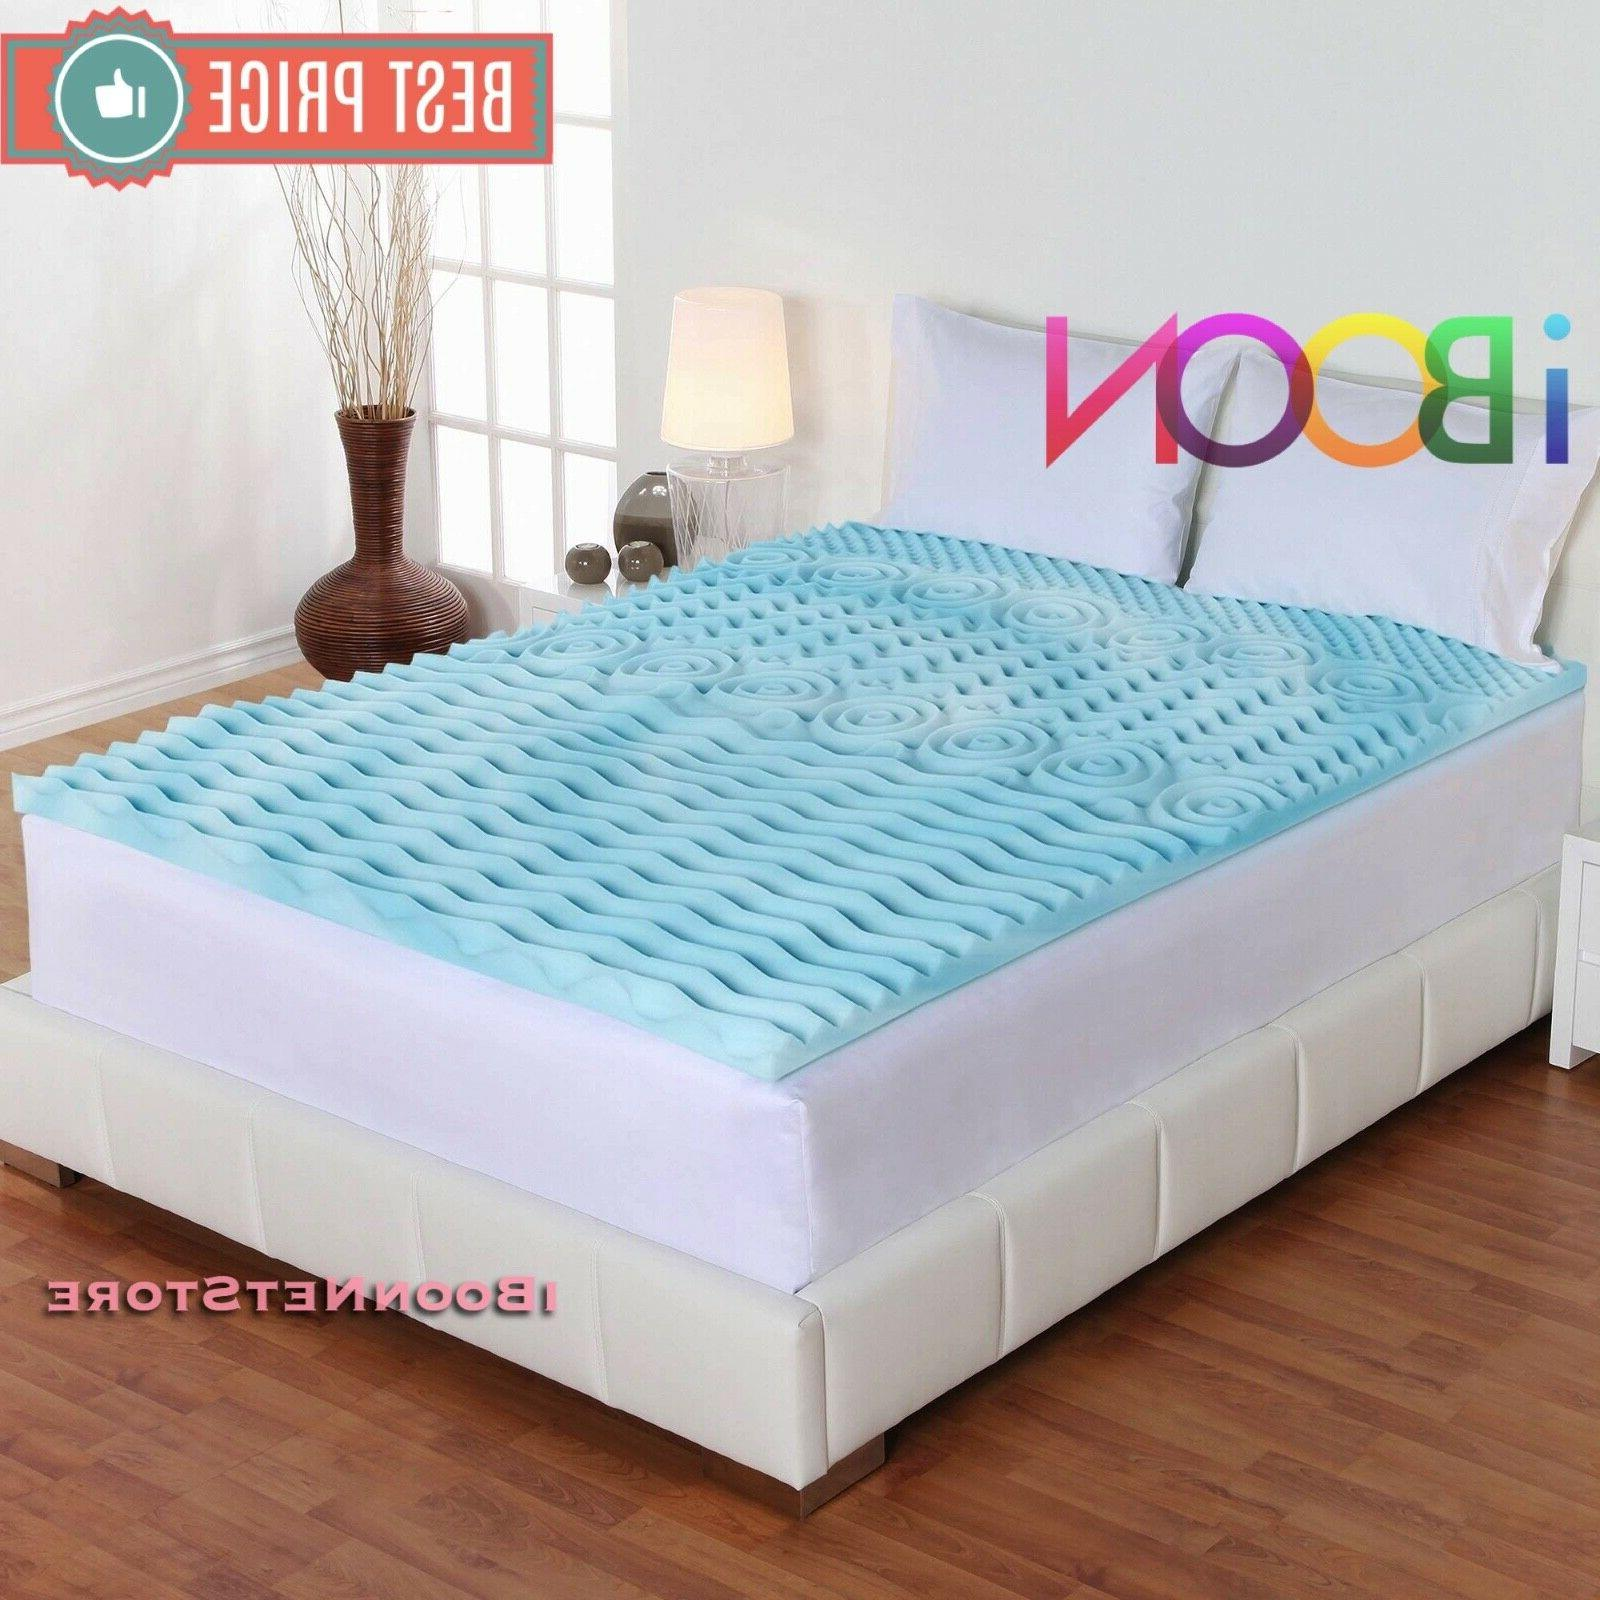 Orthopedic 3 Memory Foam Queen Size Bed Cover